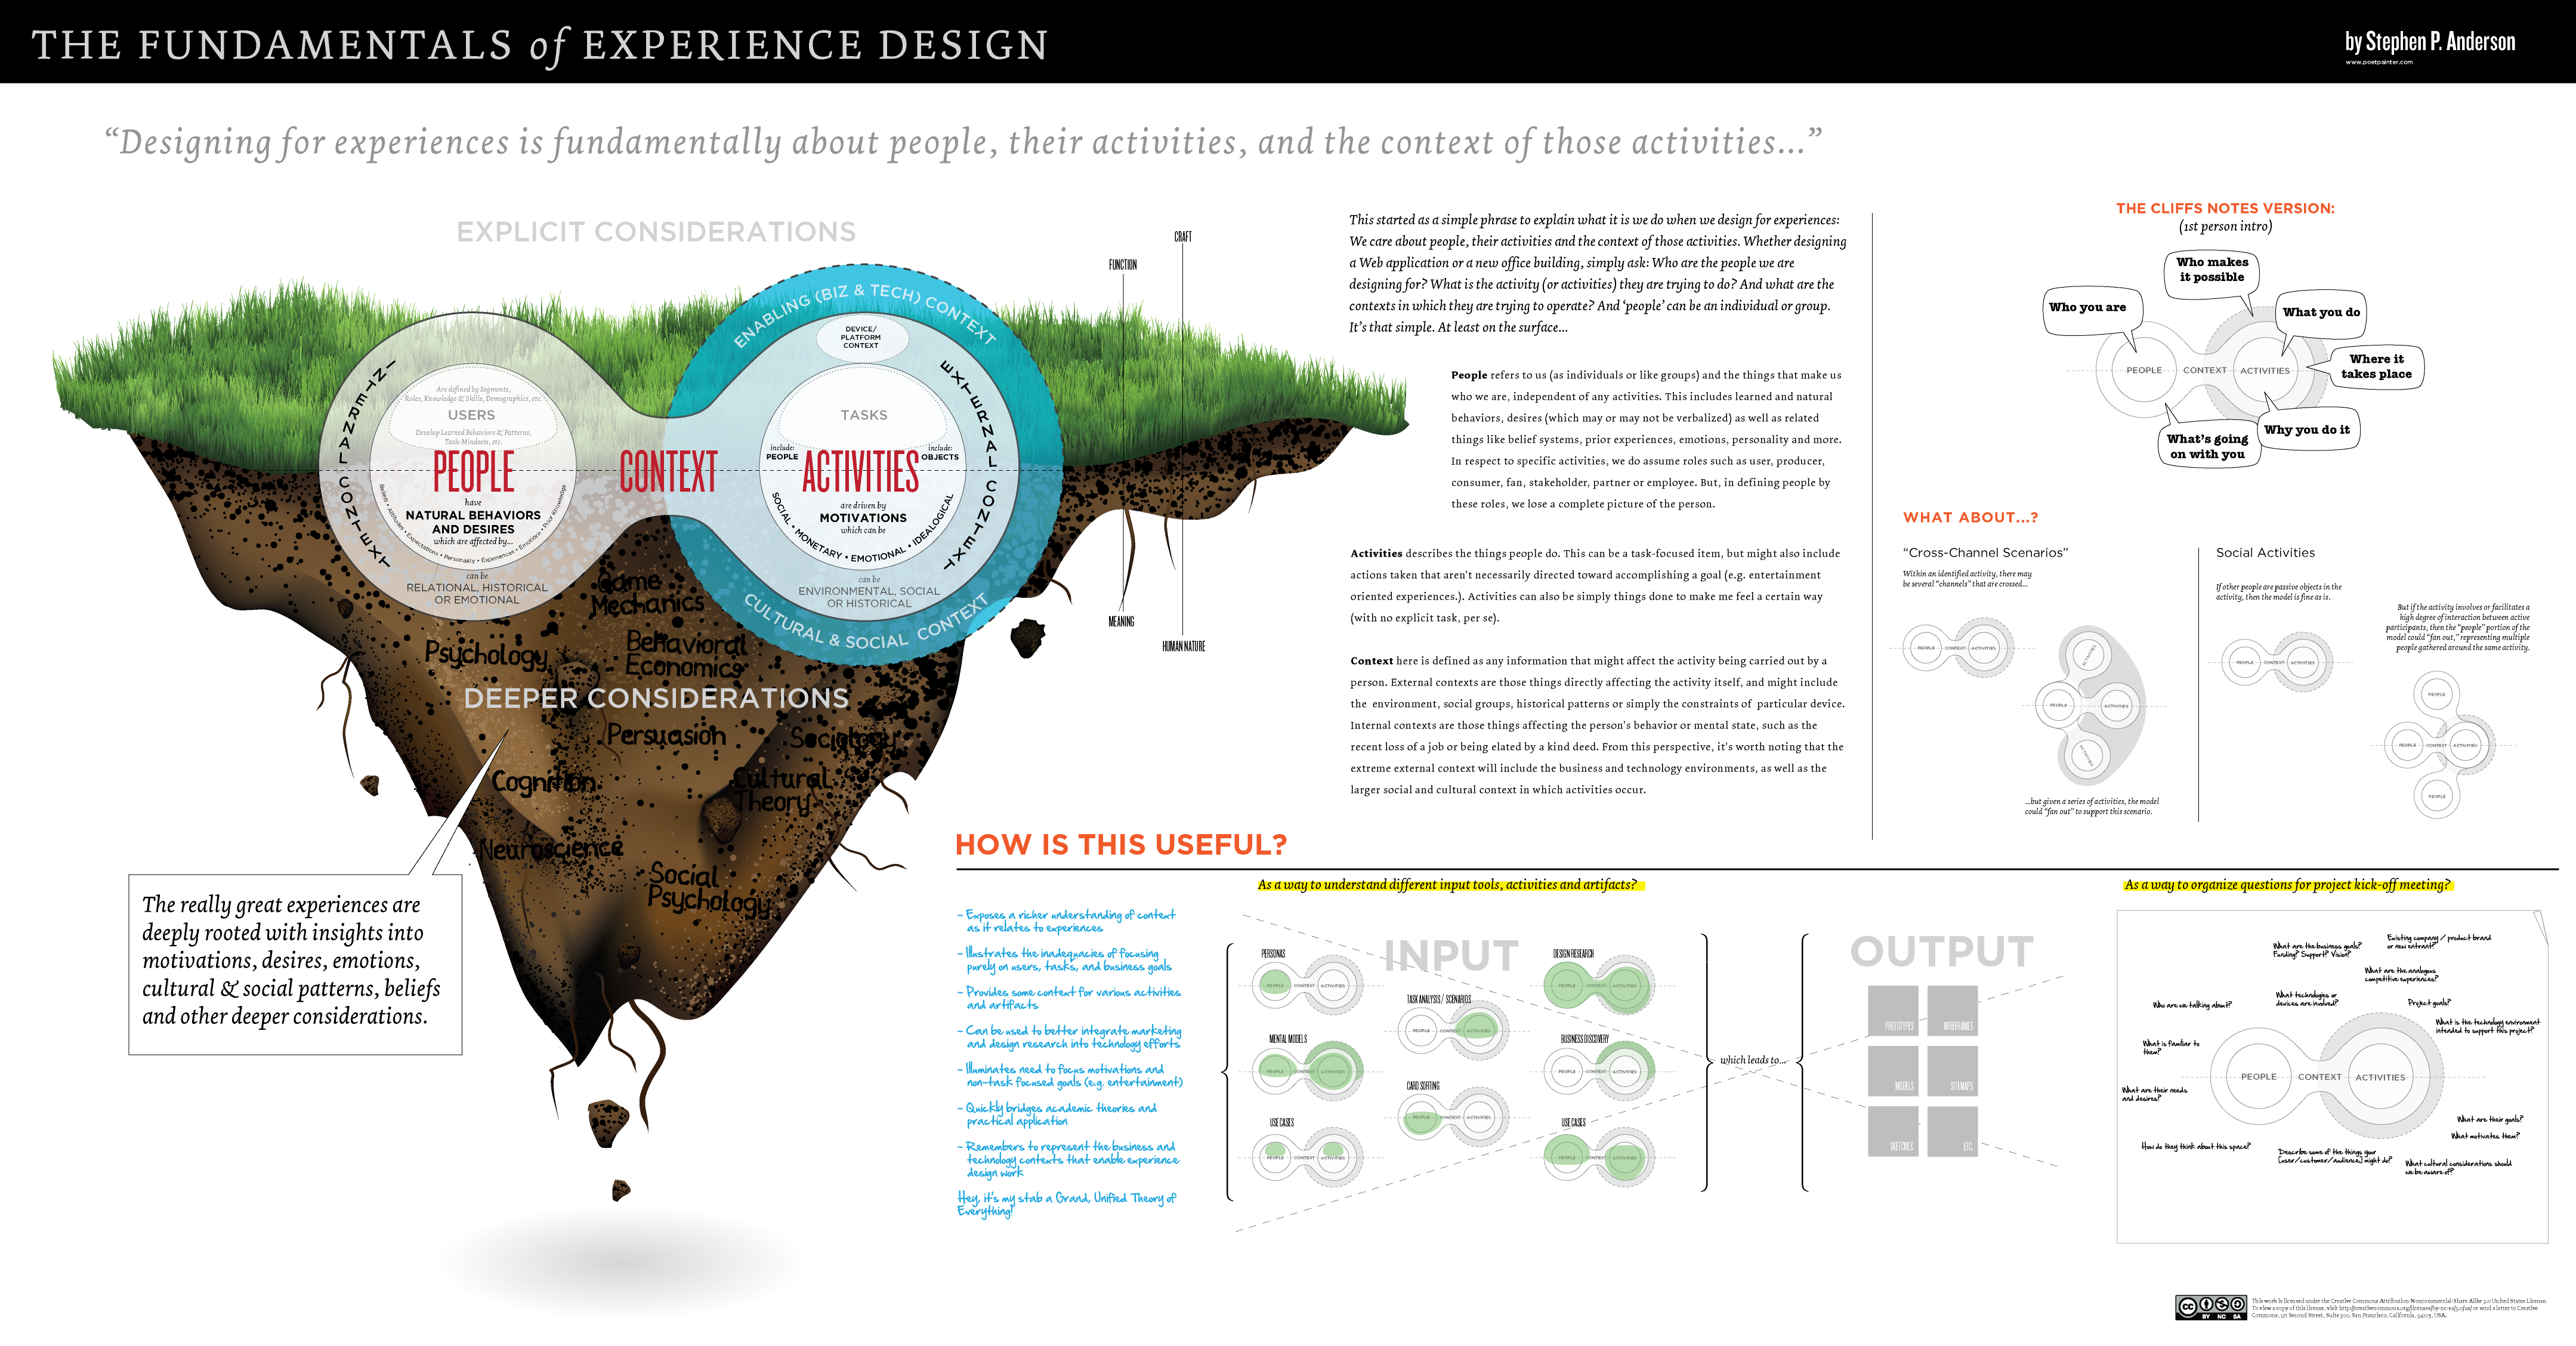 Fundamentals-of-Experience-Design-stephenpa.png (4318×2256)